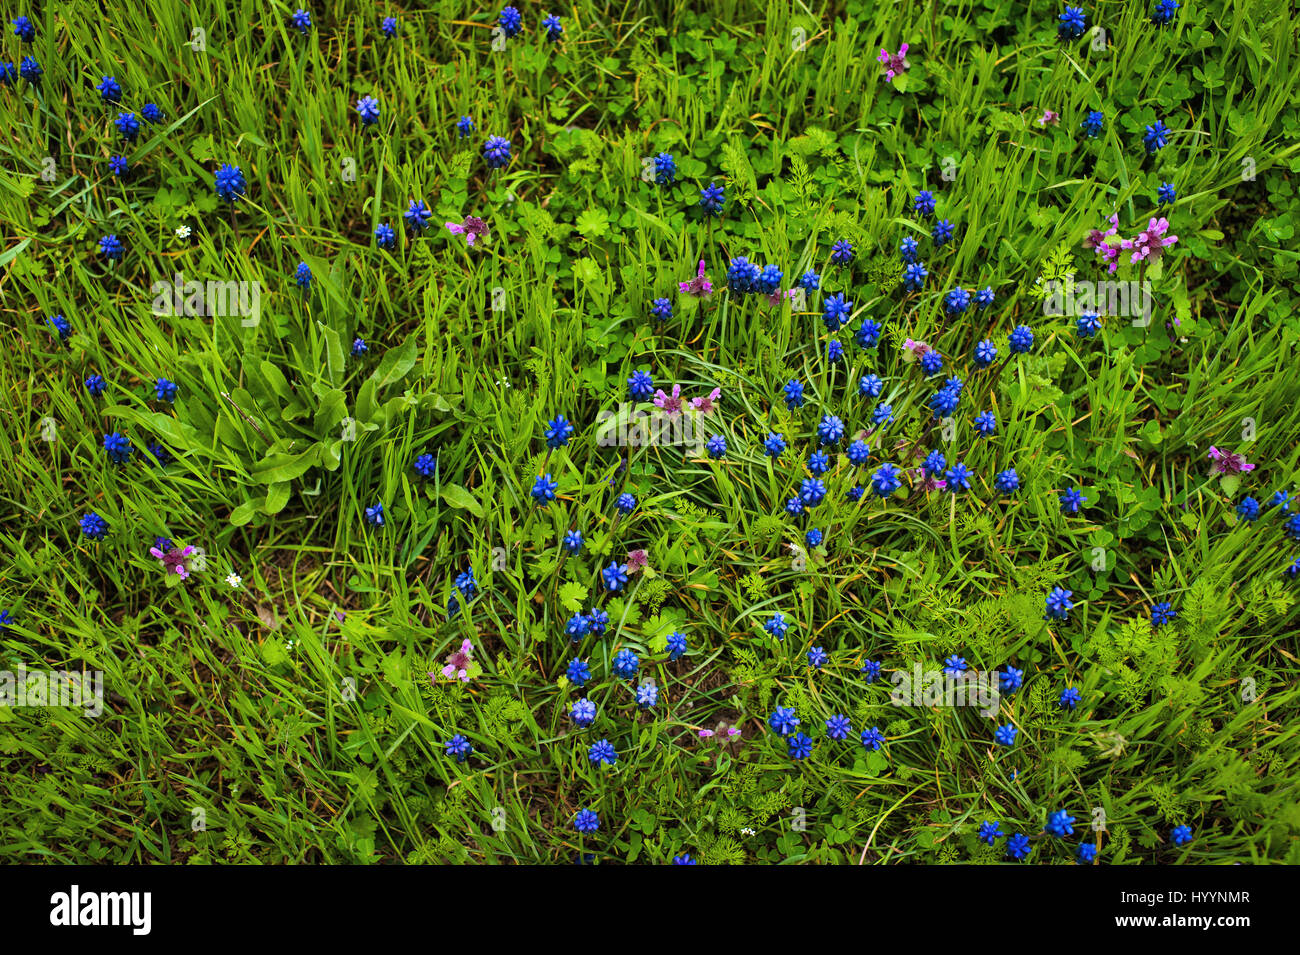 A muscari armeniacum flower or commonly known as grape hyacinth in a defocused spring garden. - Stock Image